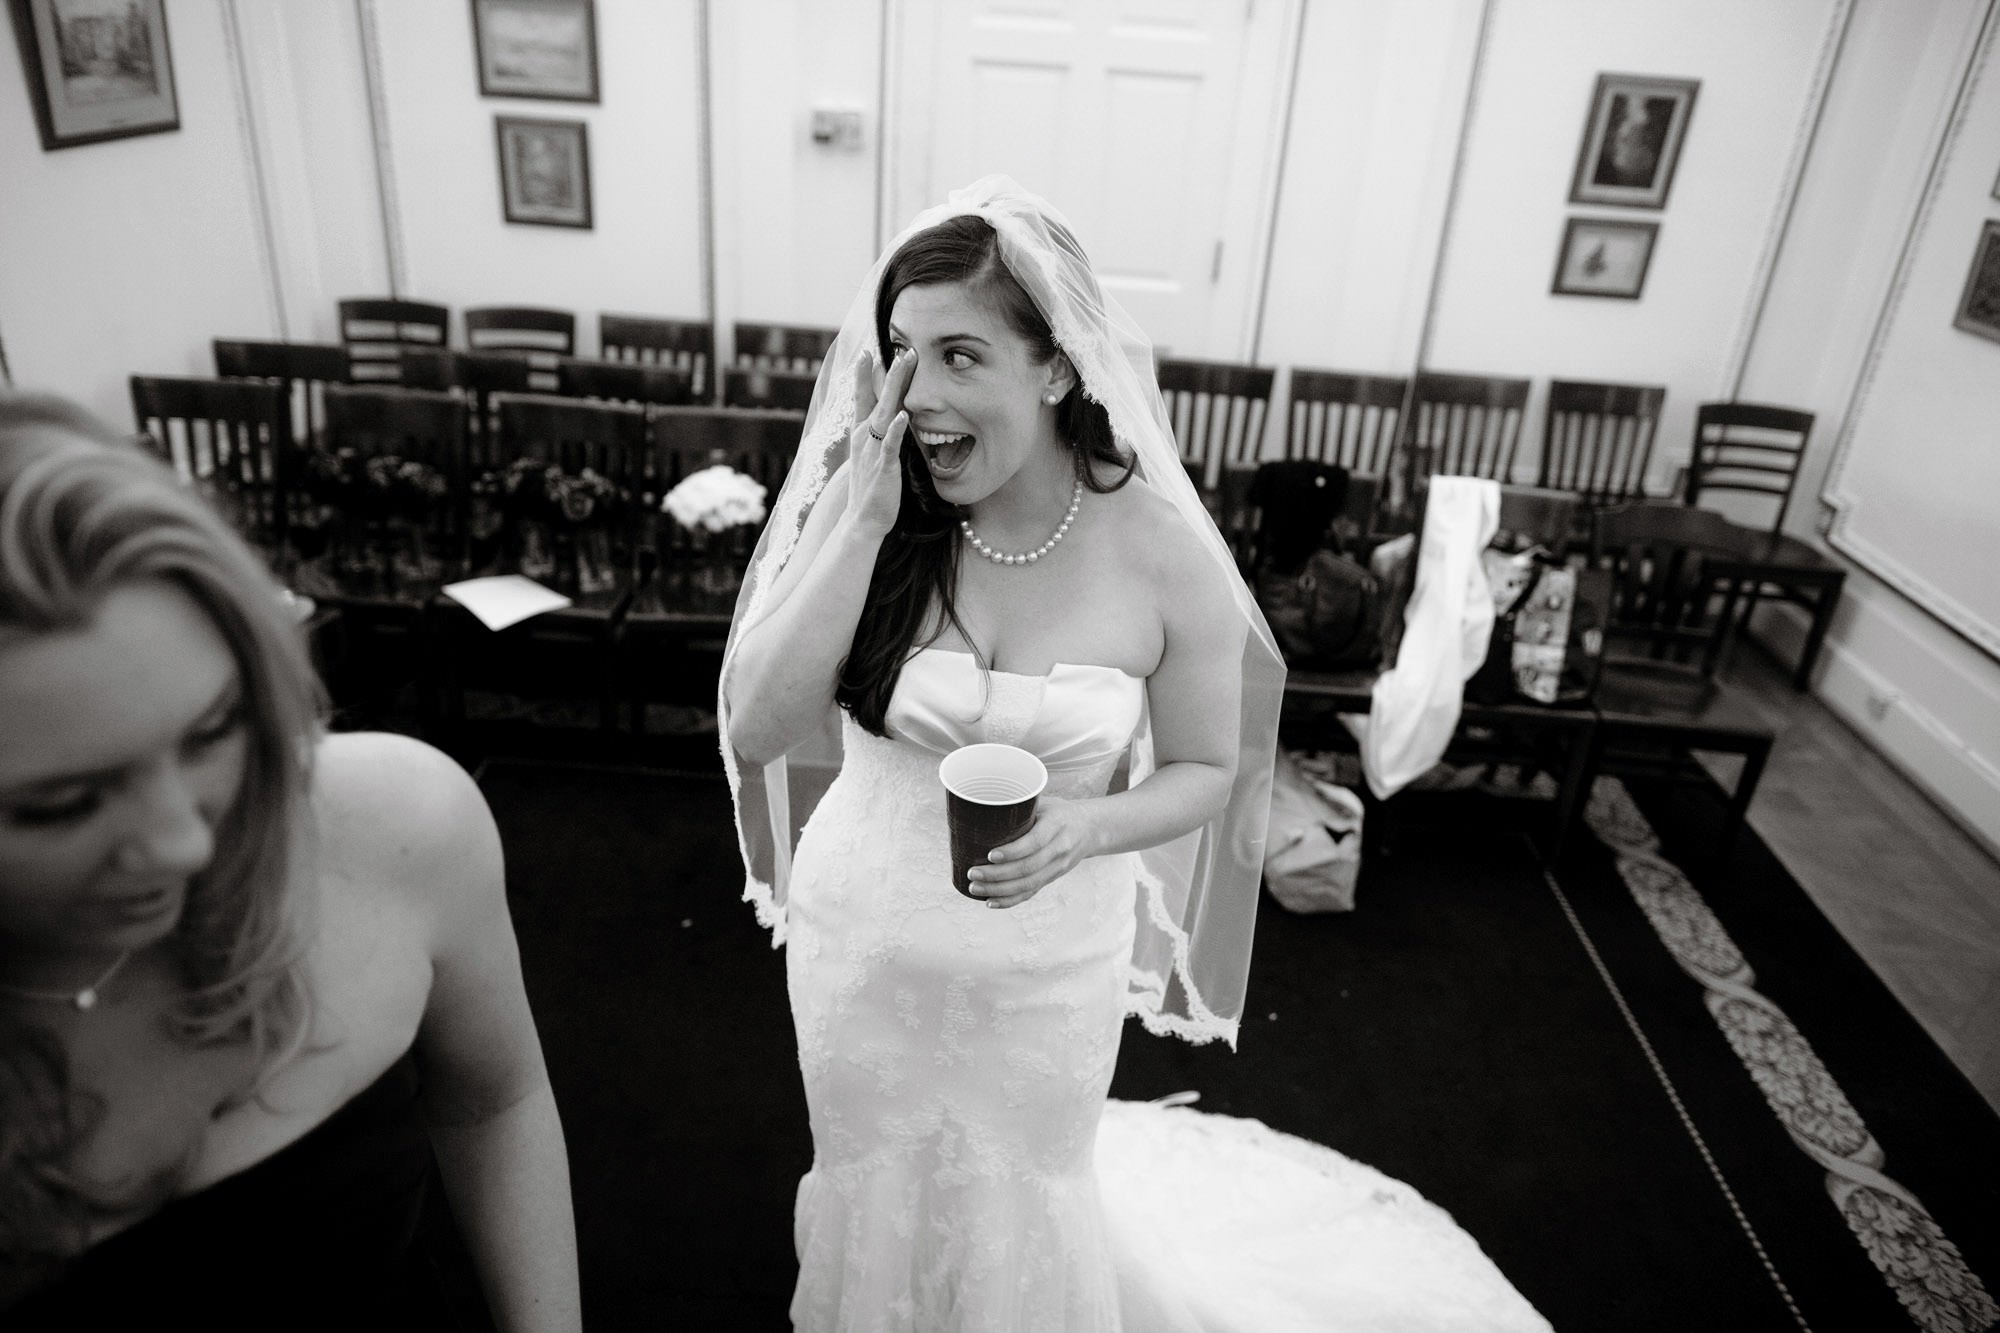 The bride tears up on her DAR Memorial Continental Hall Wedding day.